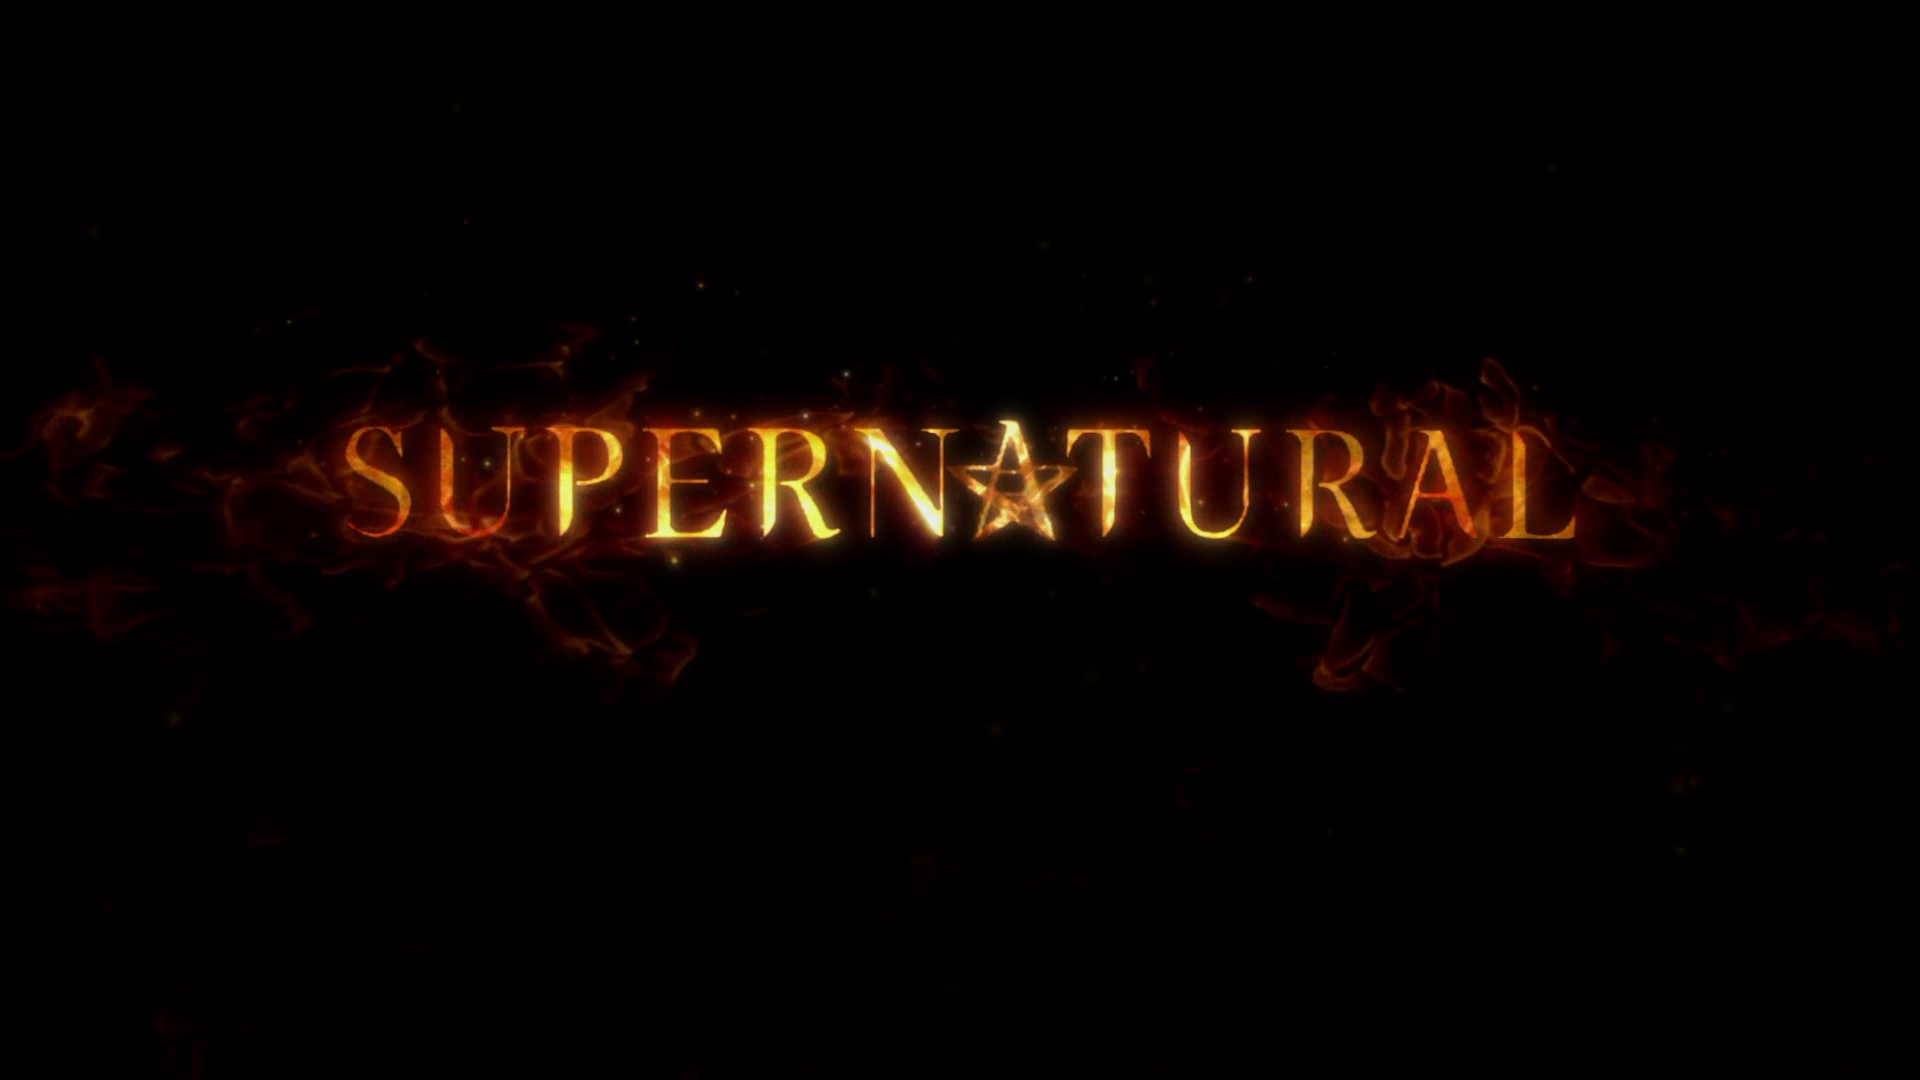 Supernatural wallpaper 8